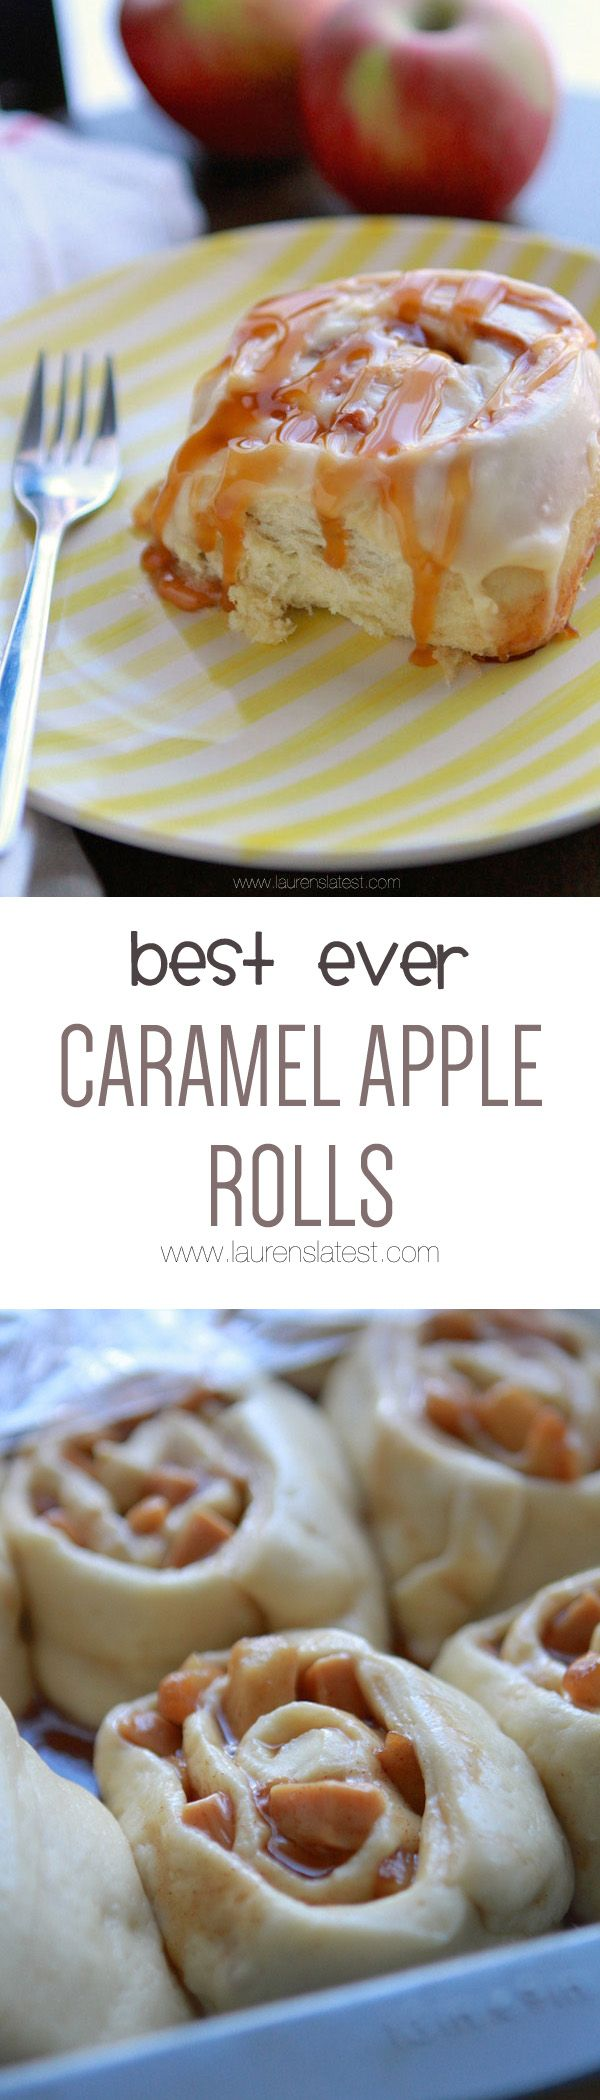 Best Ever Caramel Apple Rolls